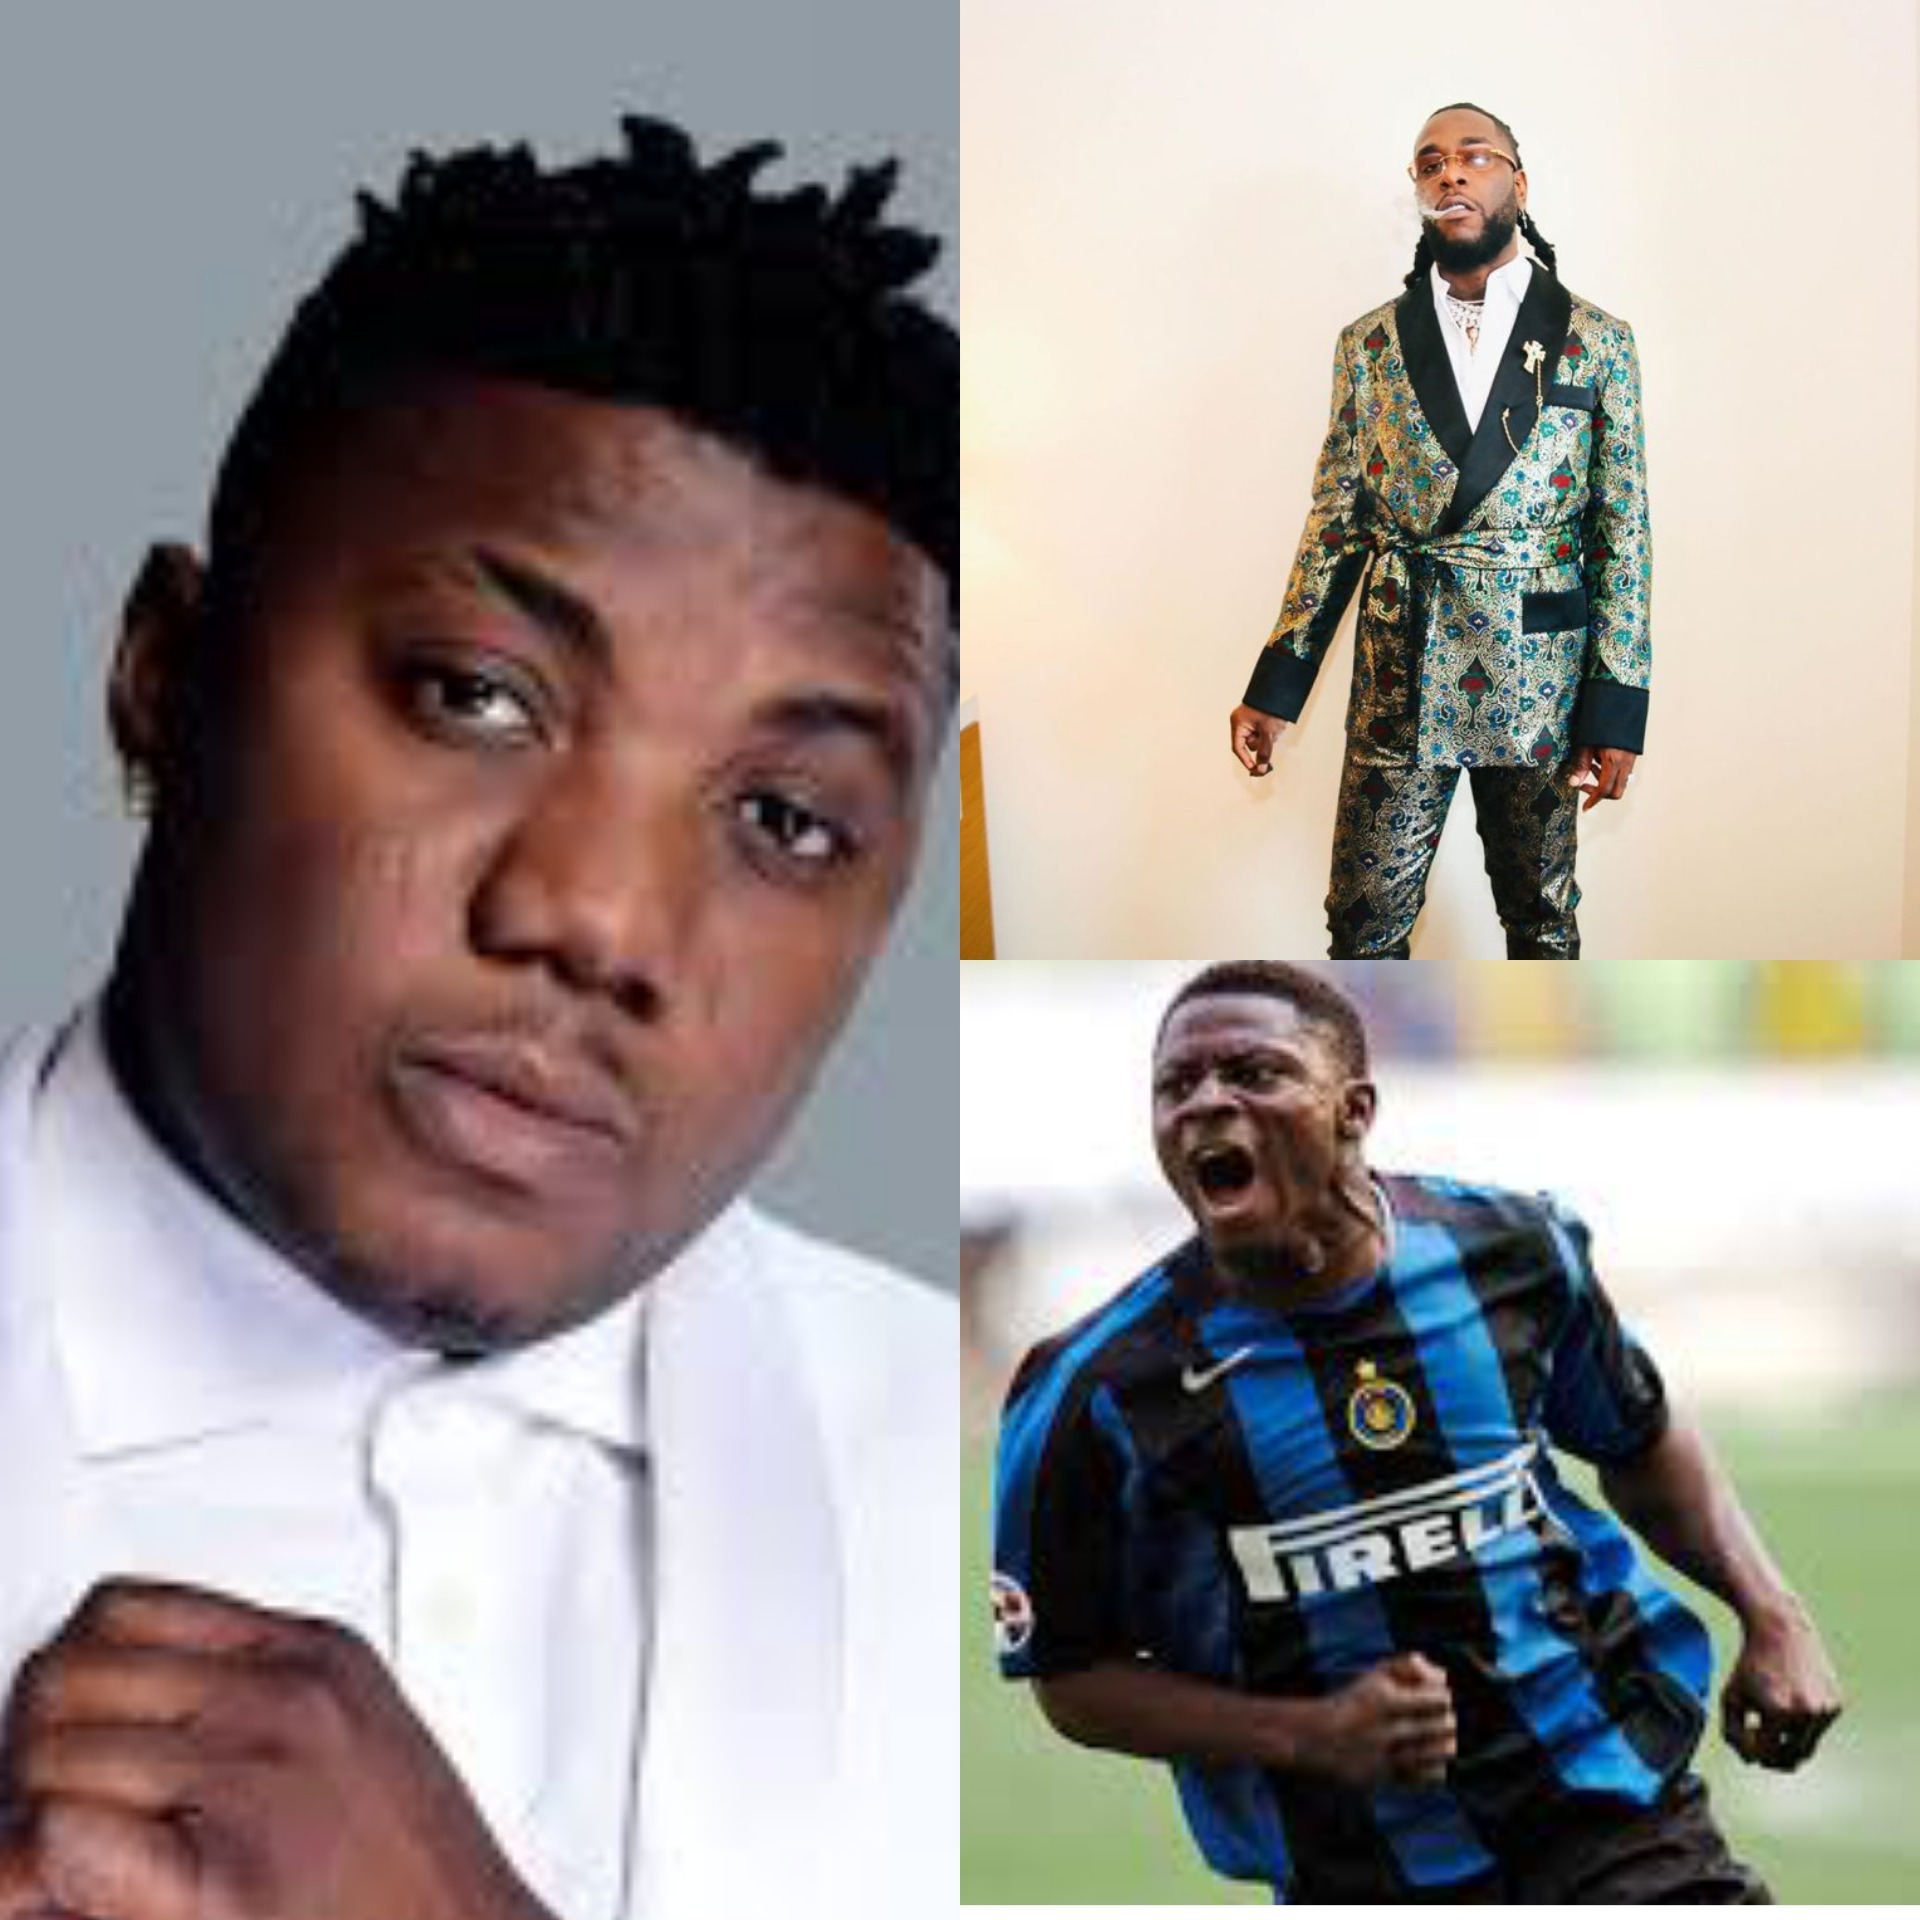 CDQ - Burna Boy - Obafemi Martins